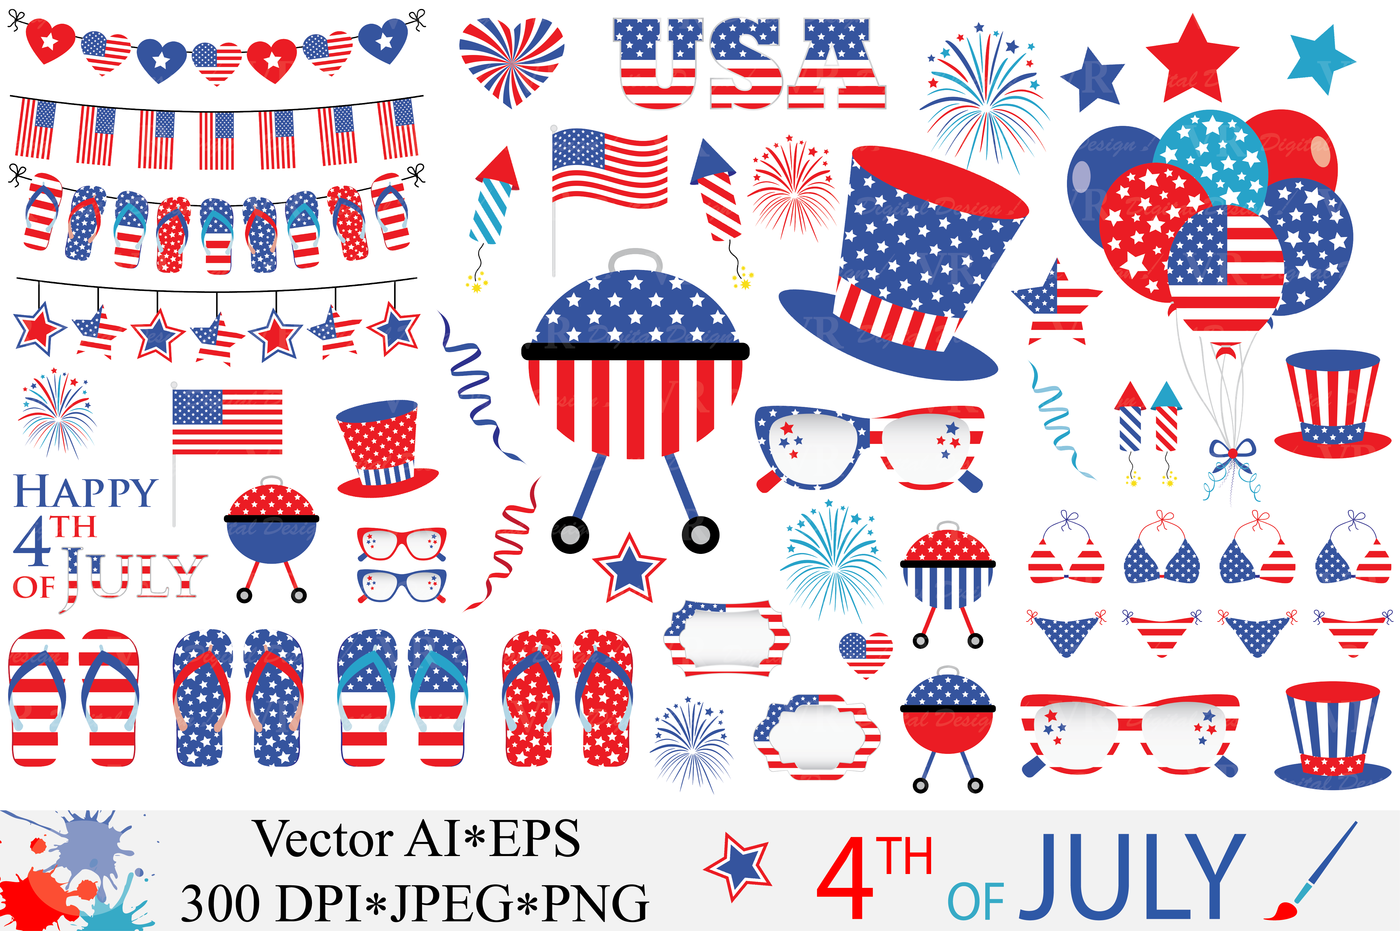 4th of July Clipart / USA Independence Day vector graphics By VR.